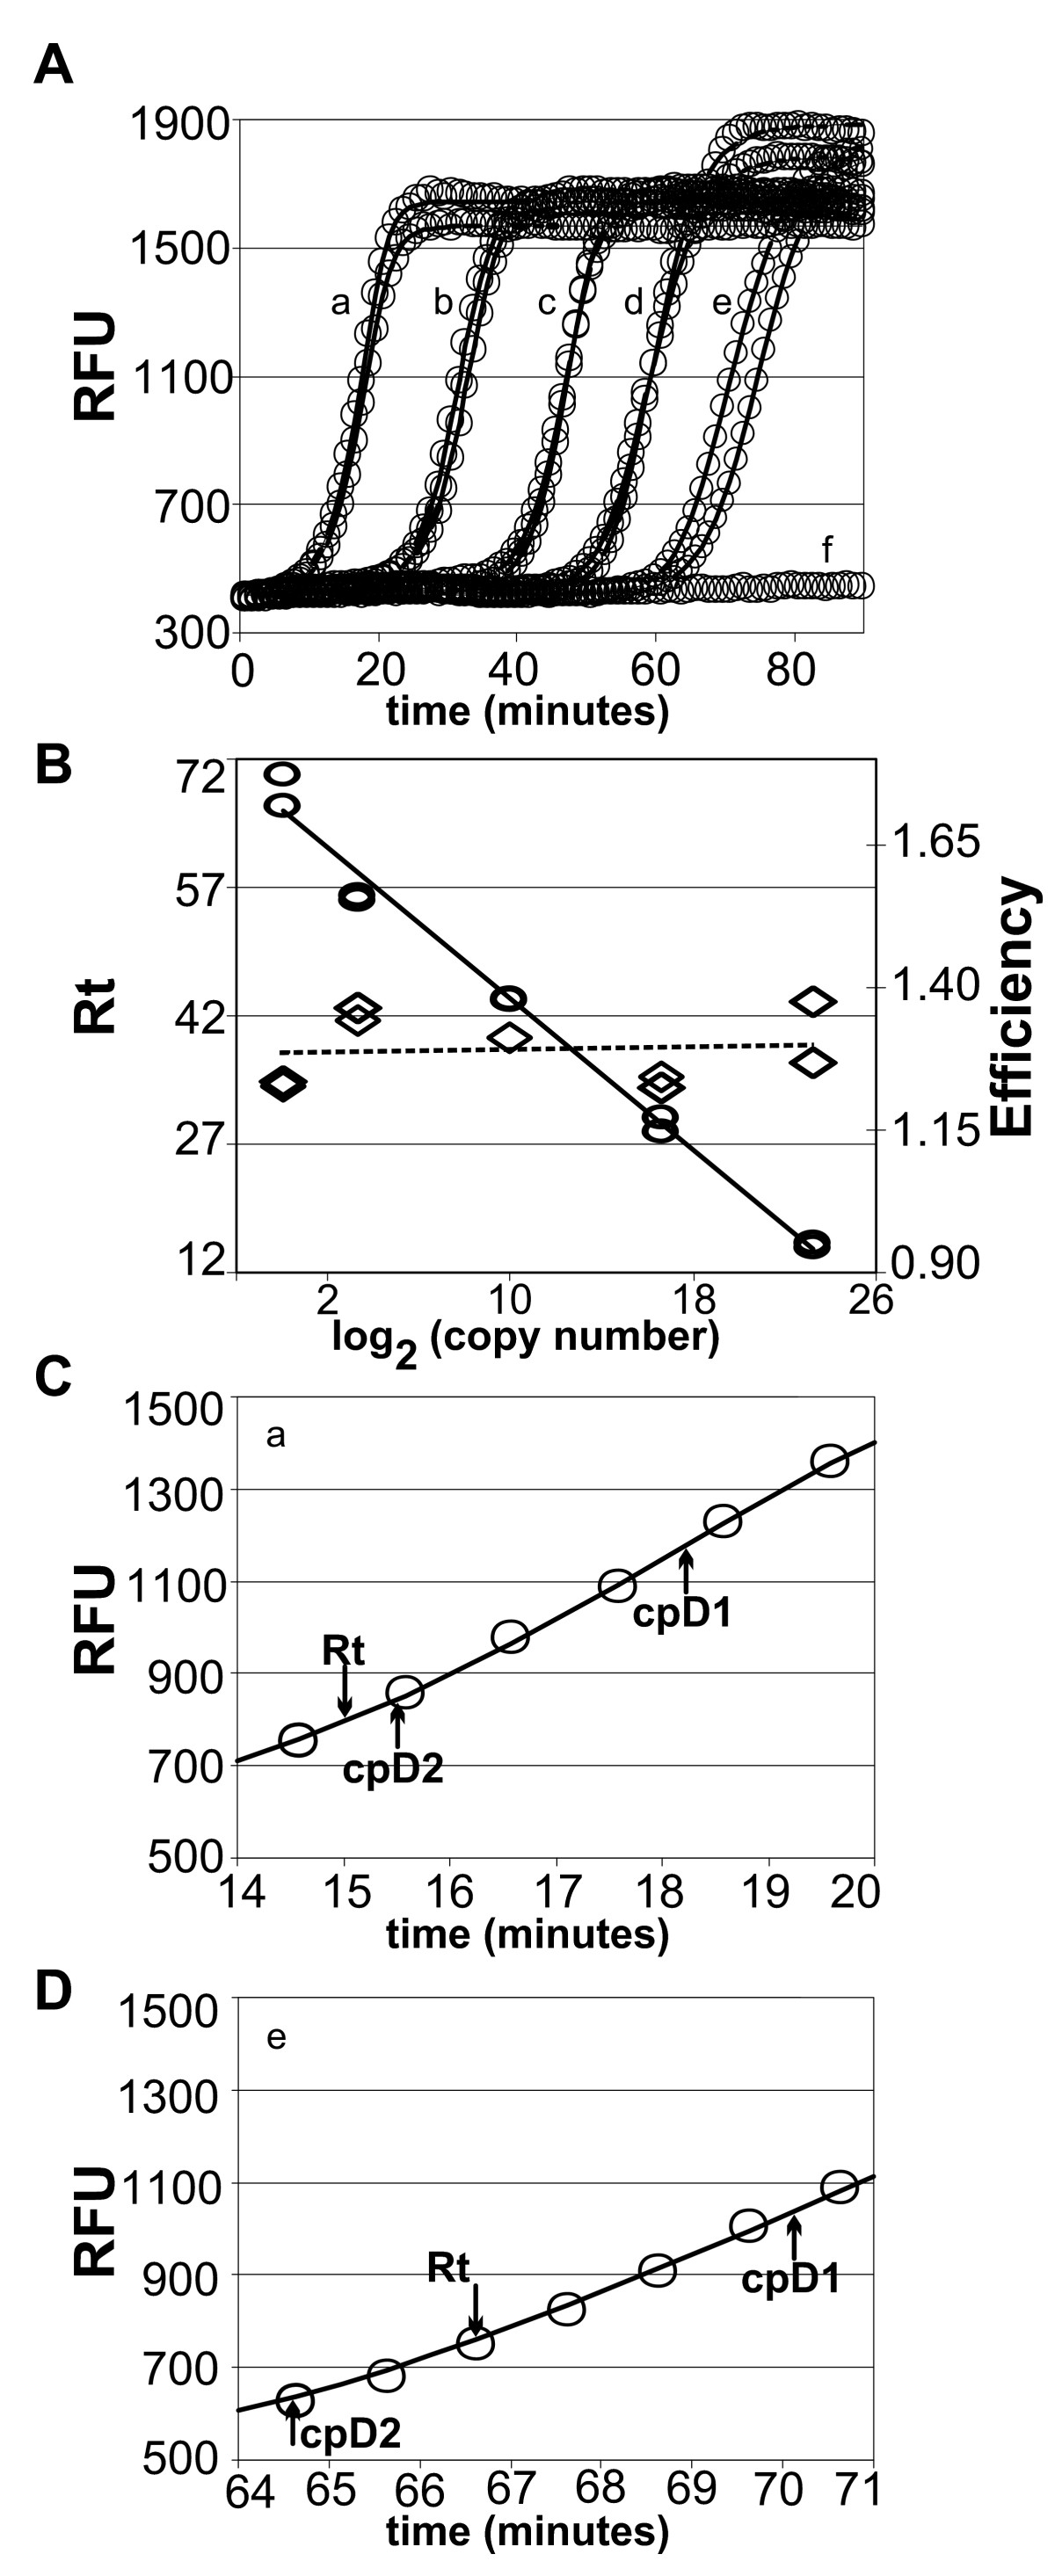 https://static-content.springer.com/image/art%3A10.1186%2F1471-2199-11-94/MediaObjects/12867_2010_Article_580_Fig4_HTML.jpg